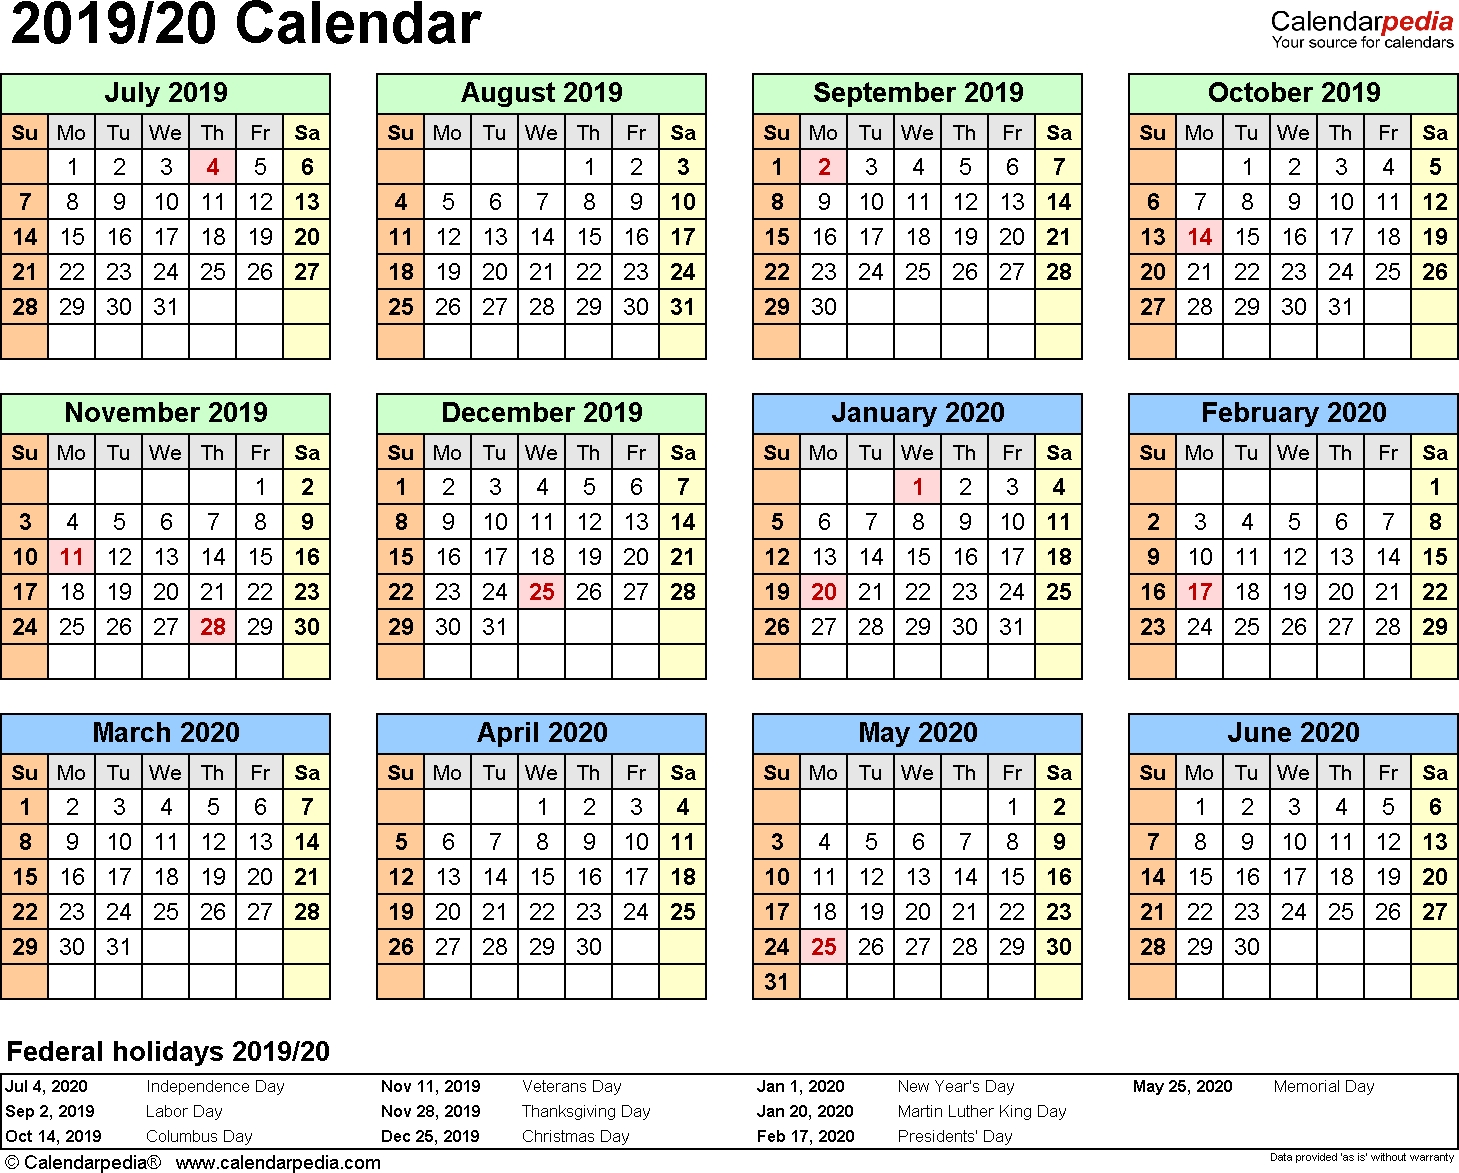 Split Year Calendar 2019/20 (July To June) - Pdf Templates with Calendar July 2019 - June 2020